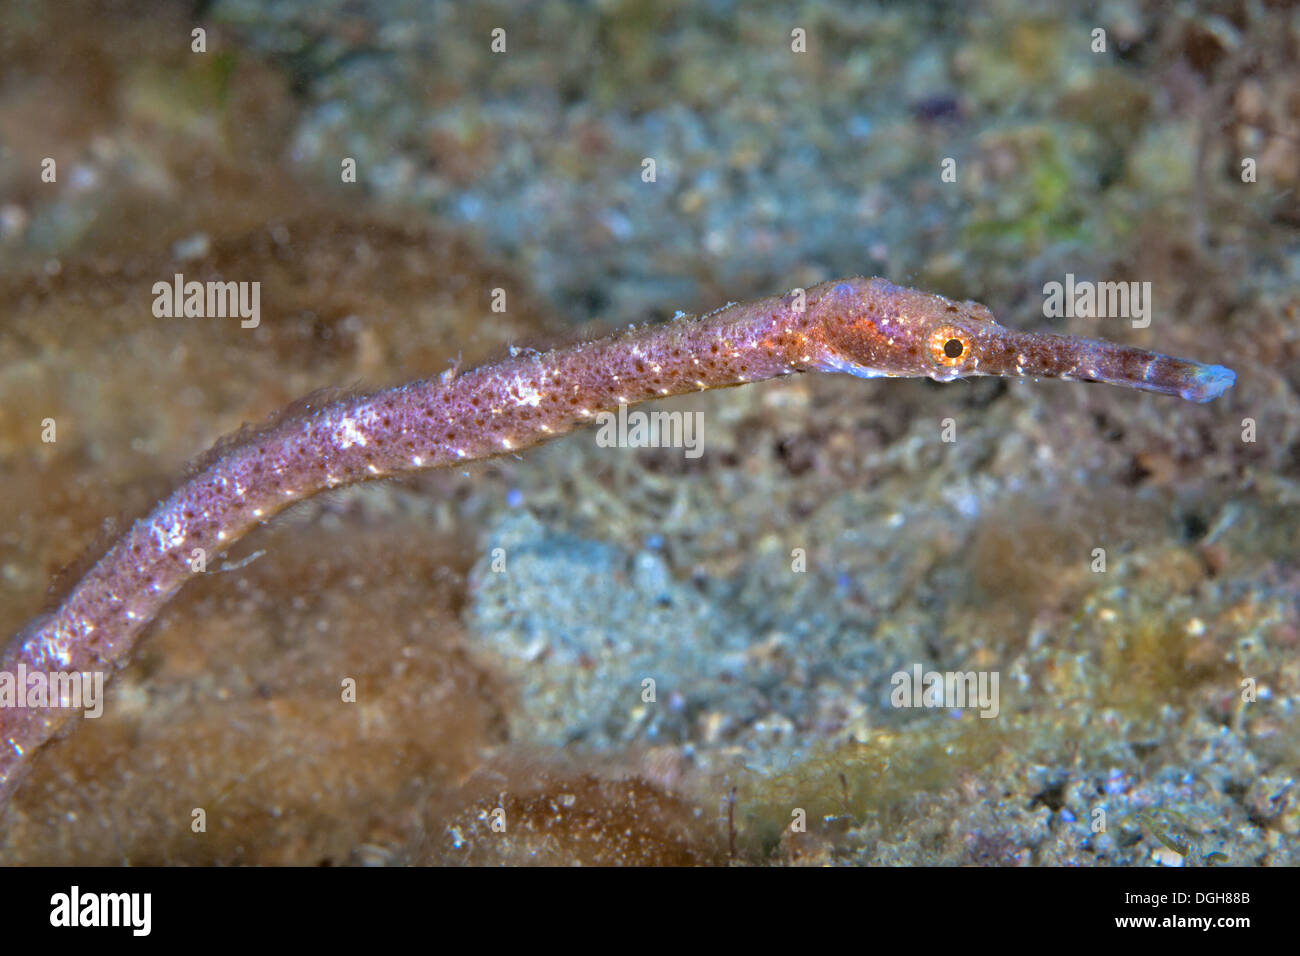 Double-ended pipefish (Trachyrhamphus bicoarctatus) macro photo close up image. Puerto Galera, Philippines. - Stock Image